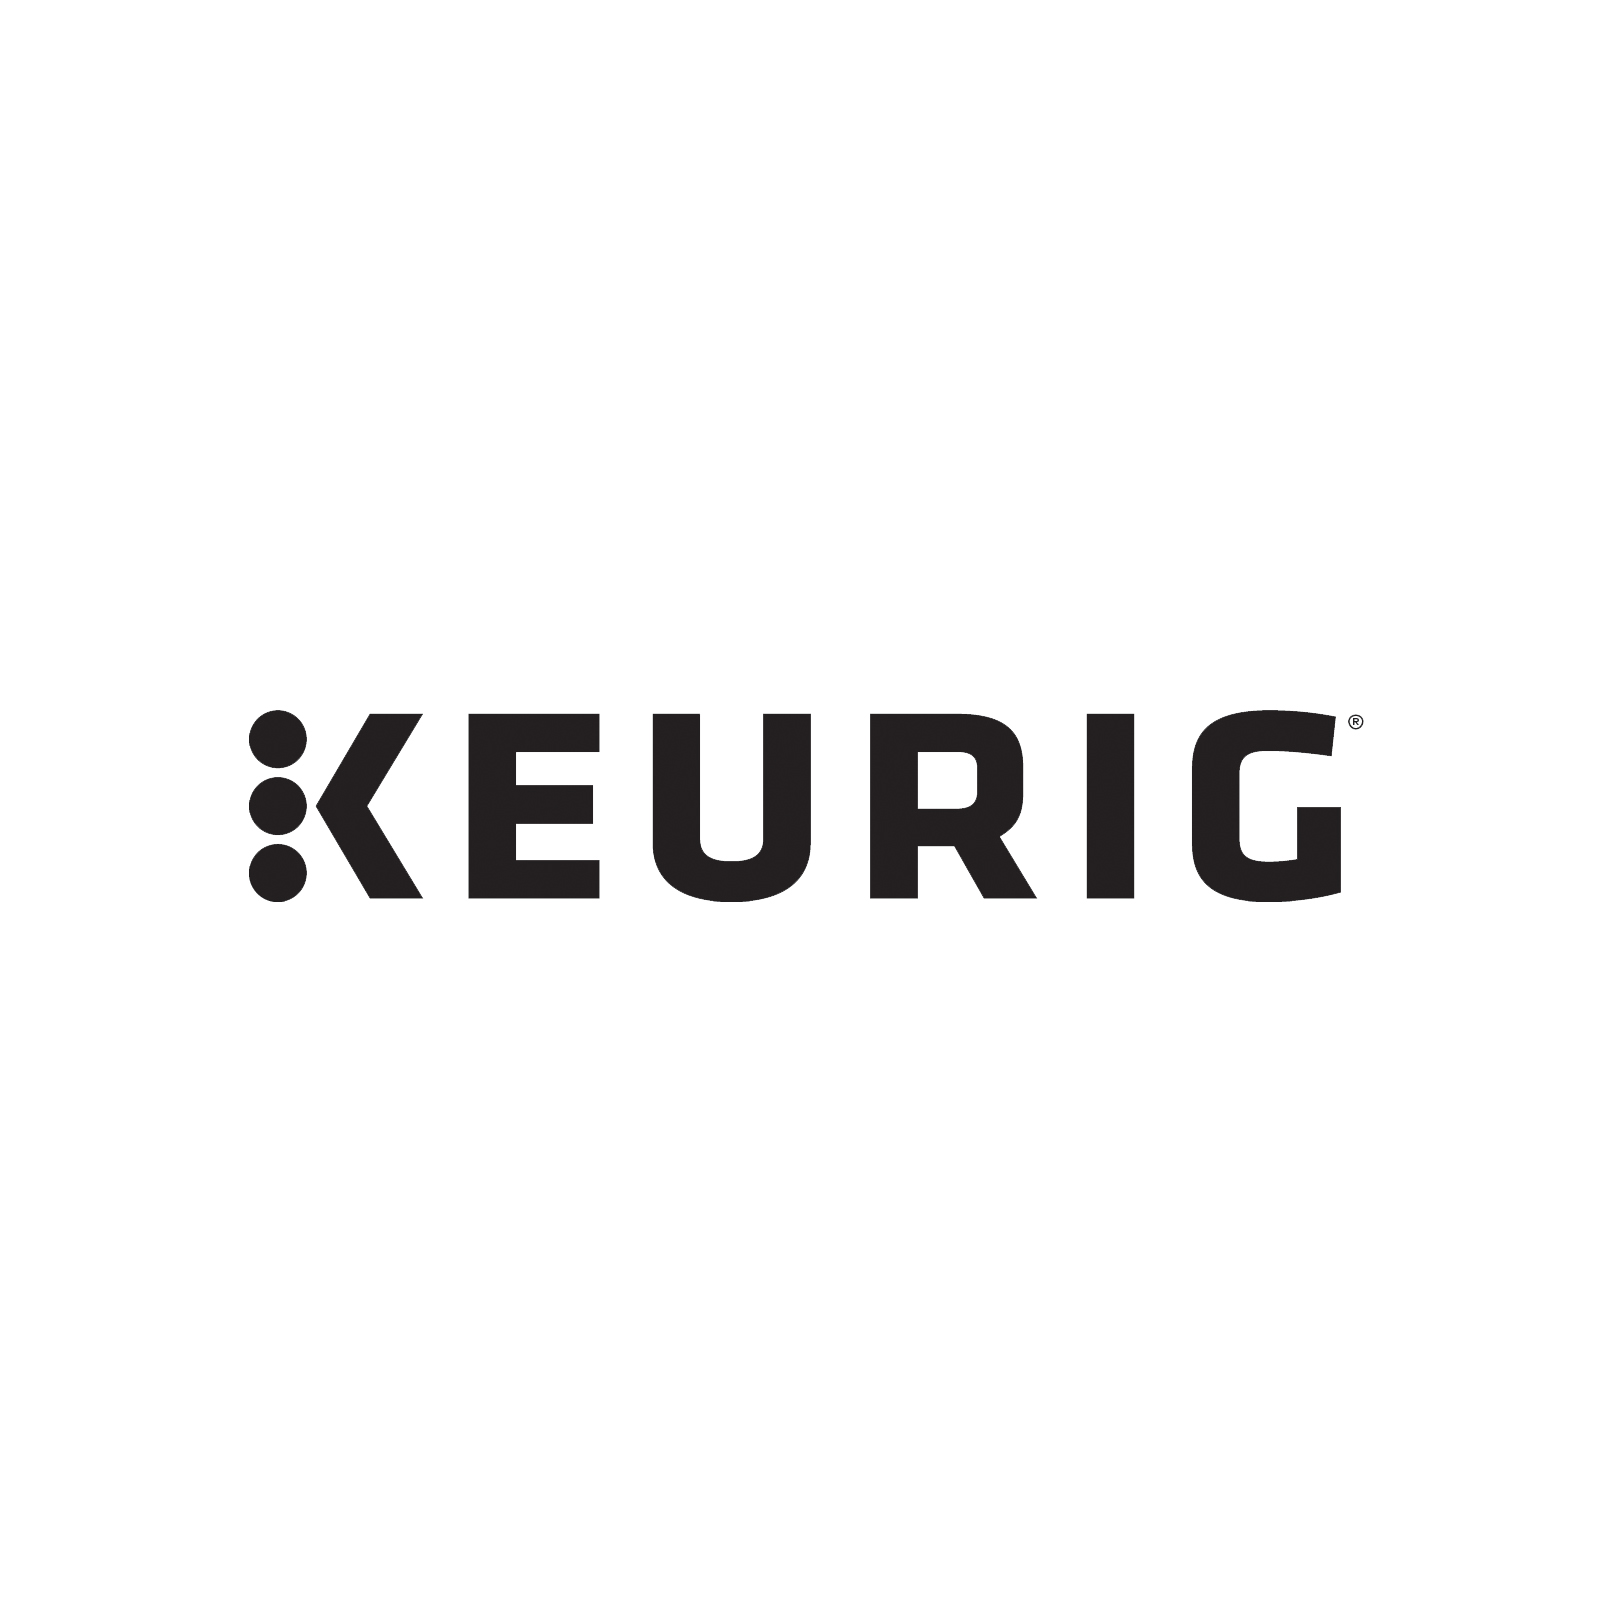 Keurig Coupon Code 40% OFF